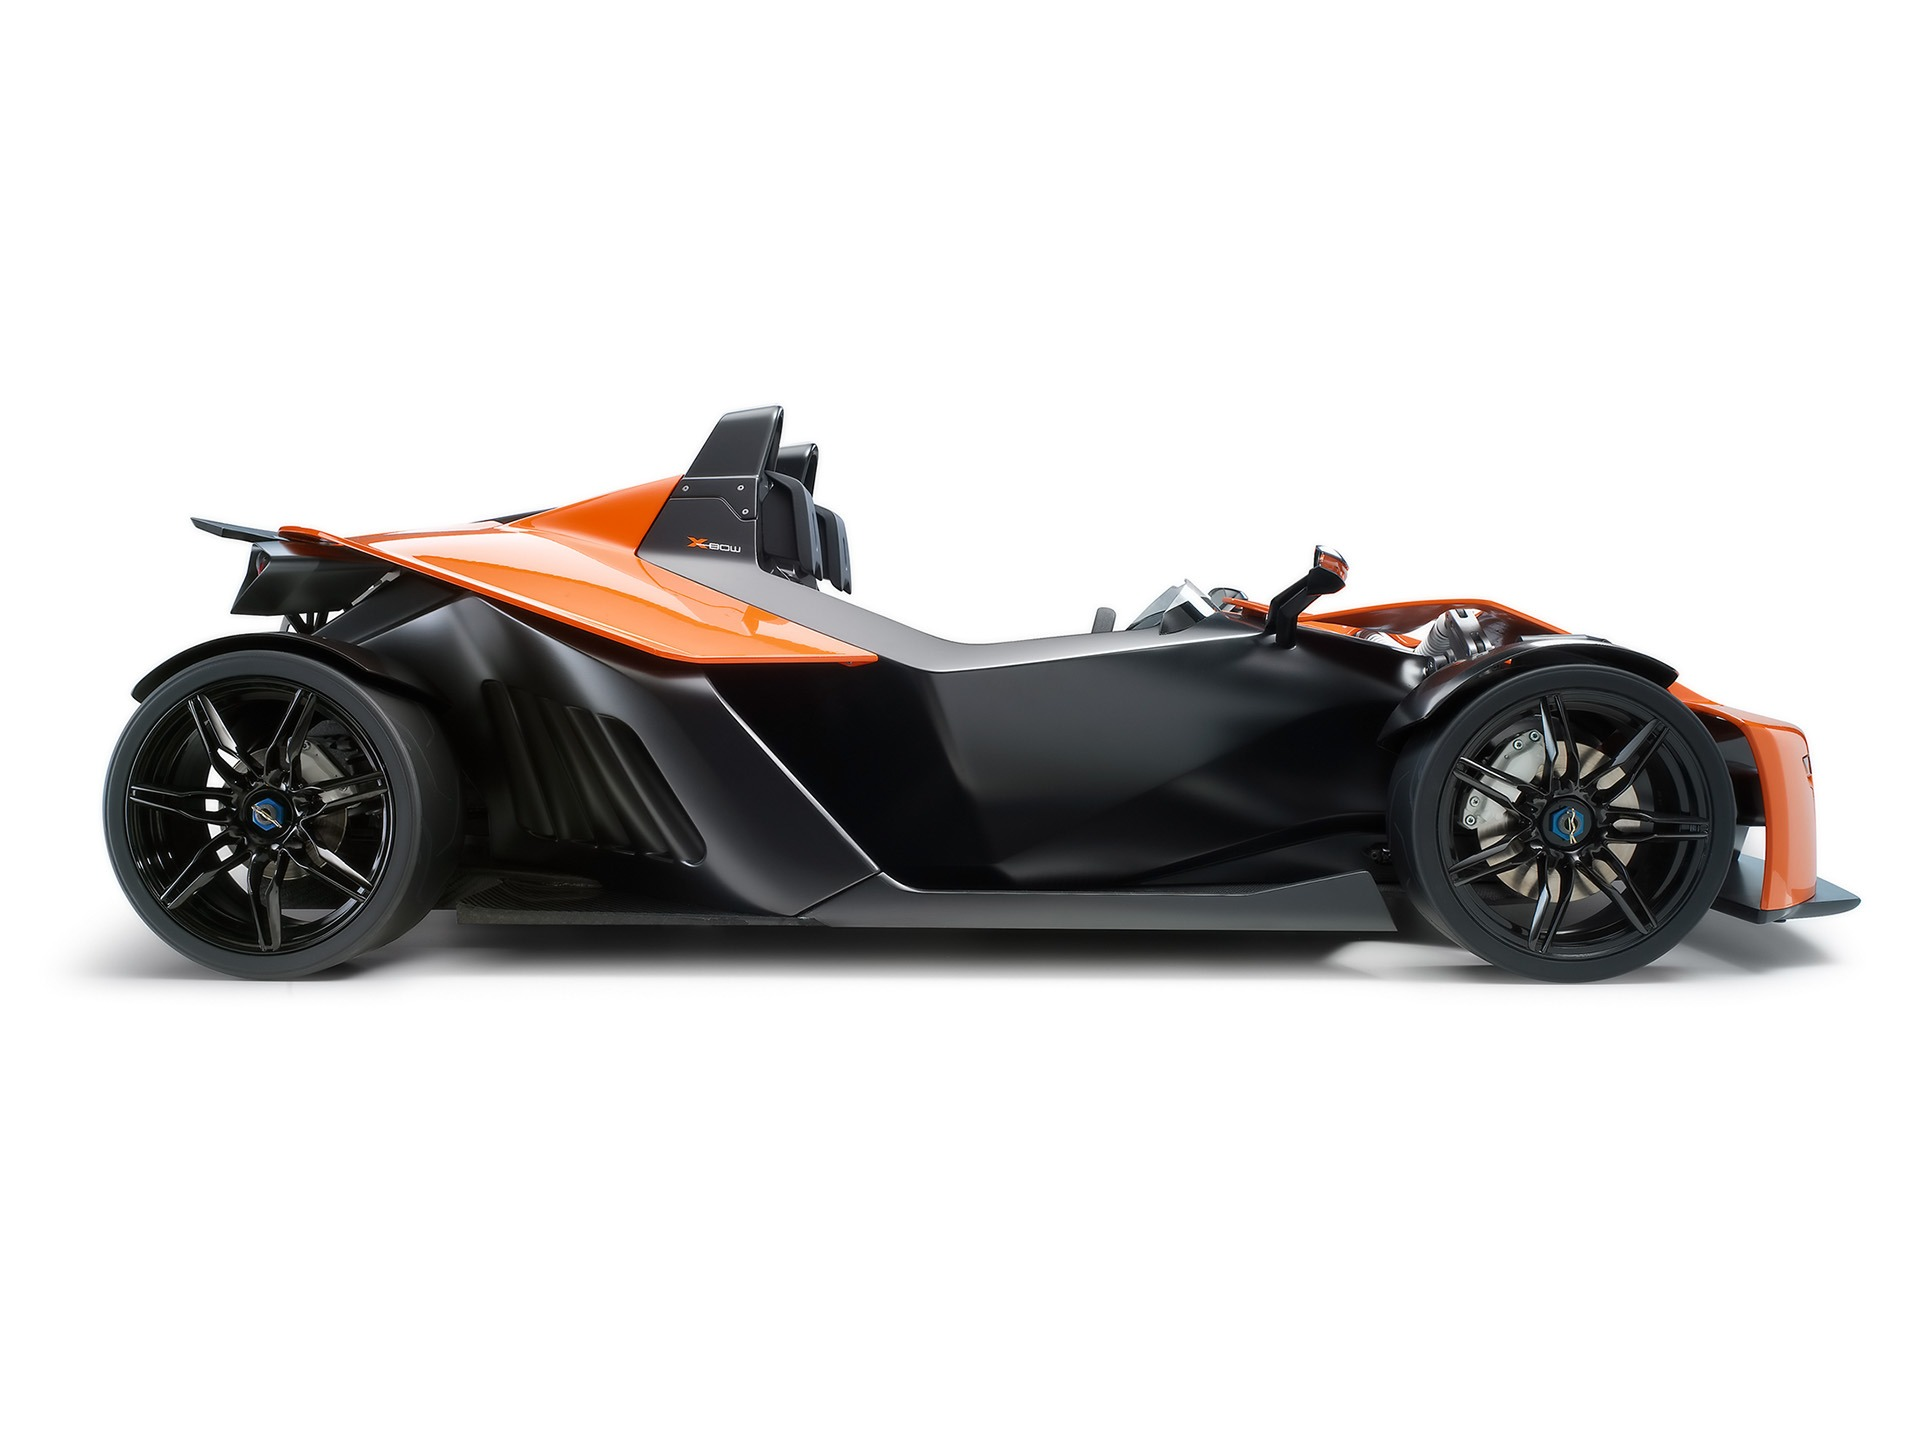 Ktm X Bow Side View Wallpaper Concept Cars Wallpapers In Jpg Format